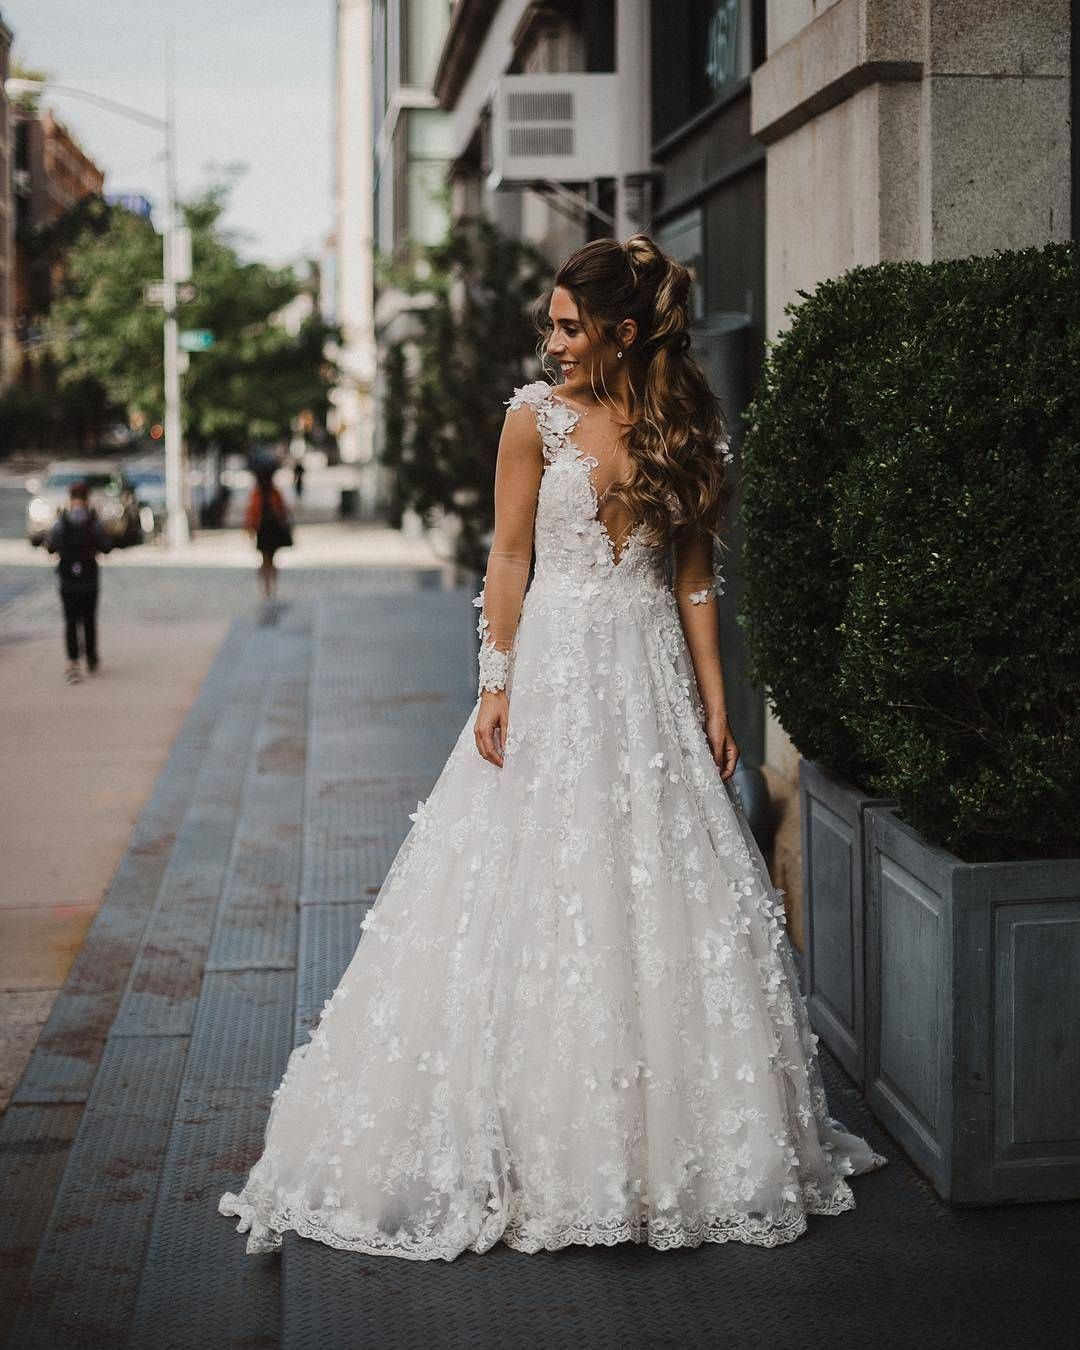 The most romantic wedding dress you will ever see the arabella